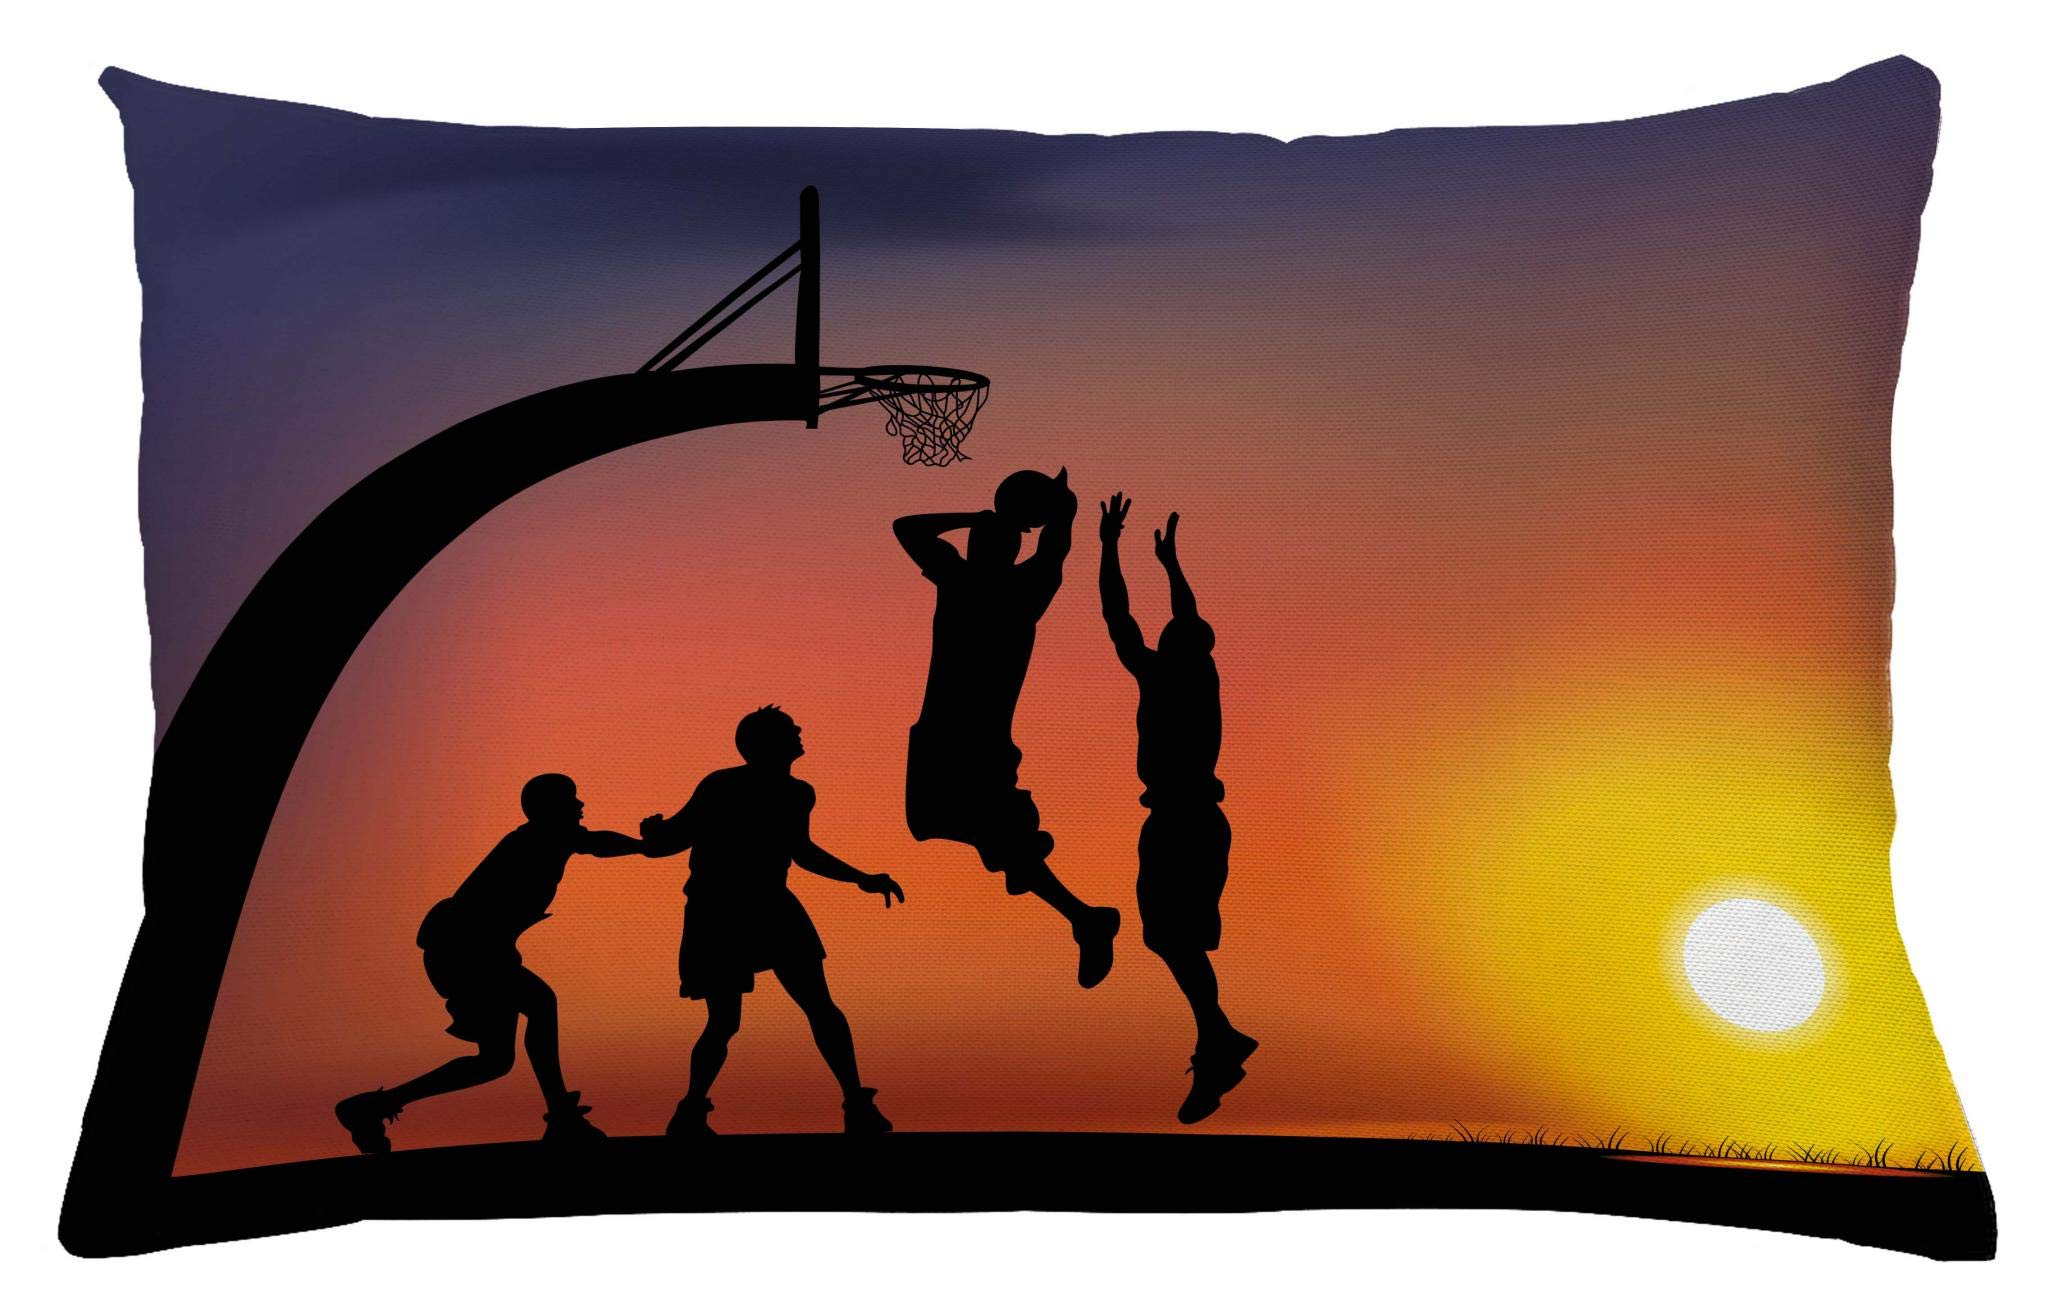 Ambesonne Teen Room Throw Pillow Cushion Cover, Boys Playing Basketball at Sunset Horizon Sky with Dramatic Scenery, Decorative Accent Pillow Case, 26 W X 16 L Inches, Dark Coral Black Yellow